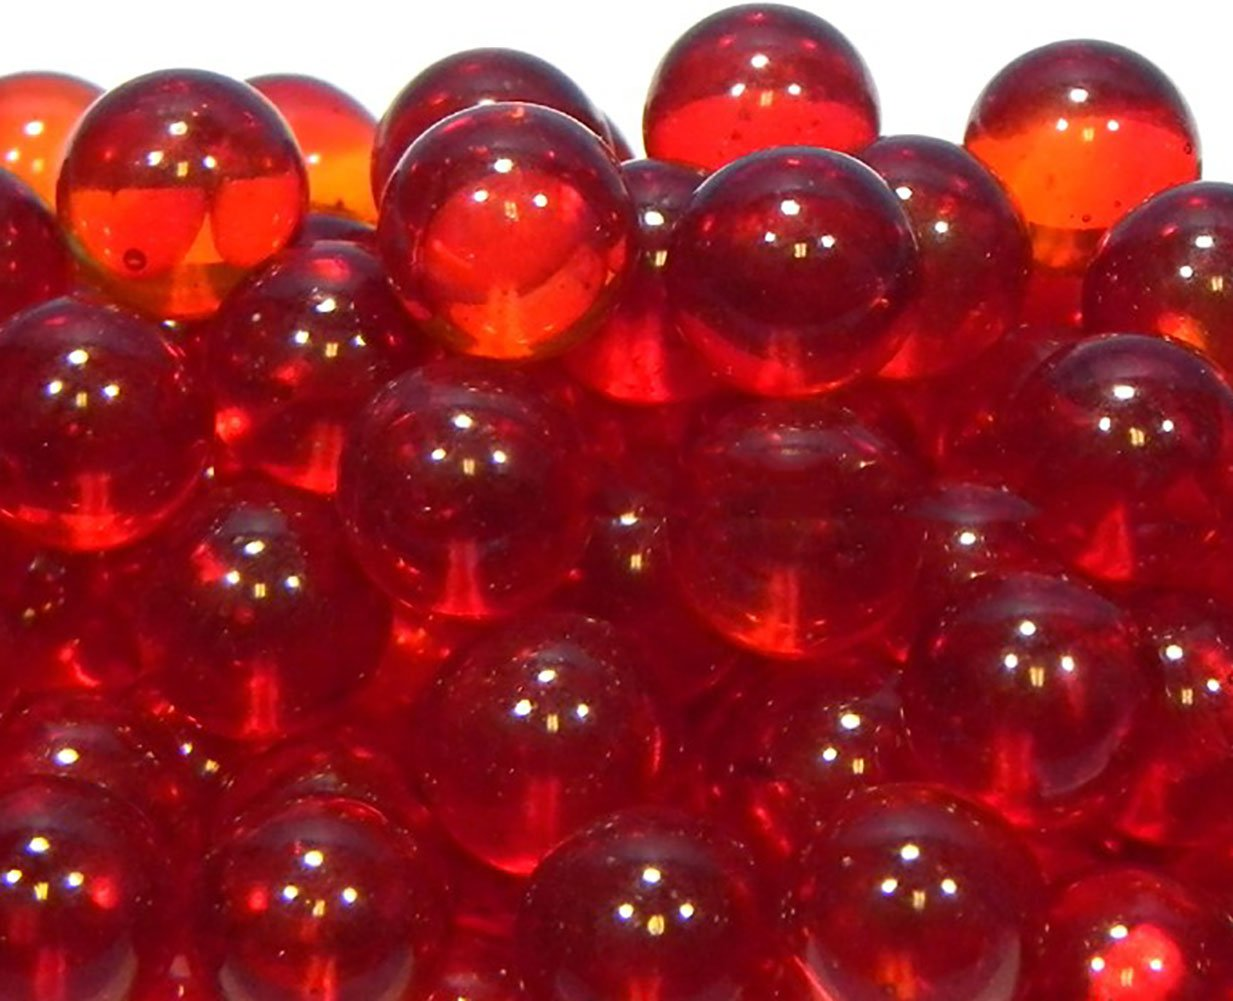 """Unique & Custom {5/8'' Inch} Set Of Approx 60 """"Round"""" Clear Marbles Made of Glass for Filling Vases, Games & Decor w/ Vibrant Shiny Ruby Cherry Tone Cough Drop Look Design [Bright Red Color]"""